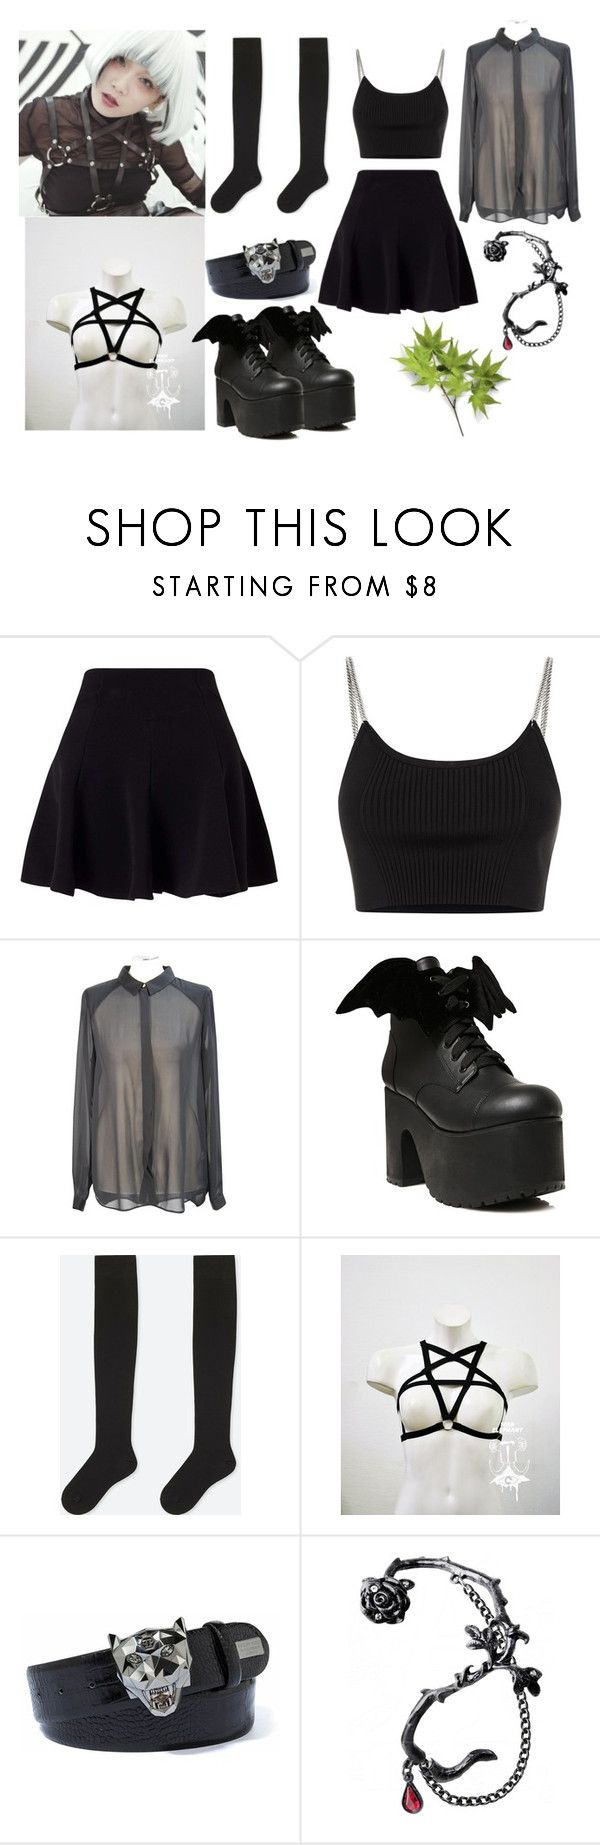 """""""Reol Inspired"""" by ingrid-ramirez-trujillo on Polyvore featuring moda, Miss Selfridge, Alexander Wang, French Connection, Current Mood y Uniqlo"""